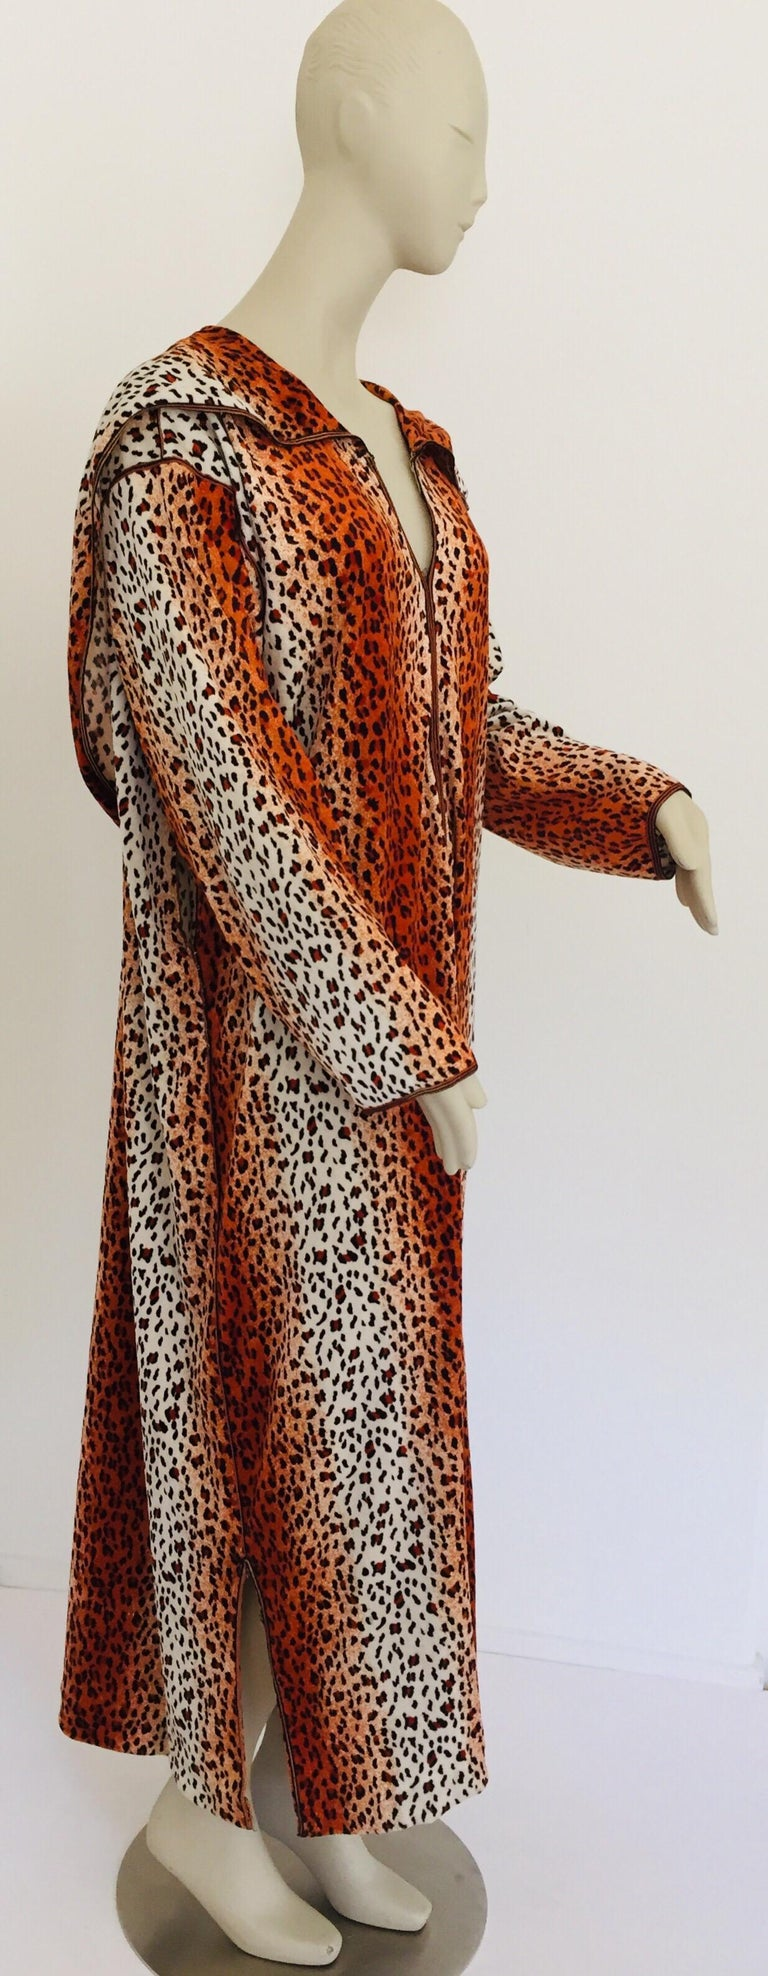 Moroccan animal print hooded caftan in light fabric with black trim embroidered, circa 1970s.  This light summery djellabah is crafted in Morocco and tailored for a relaxed fit, features a traditional neckline, embellished sleeves and vented sides.